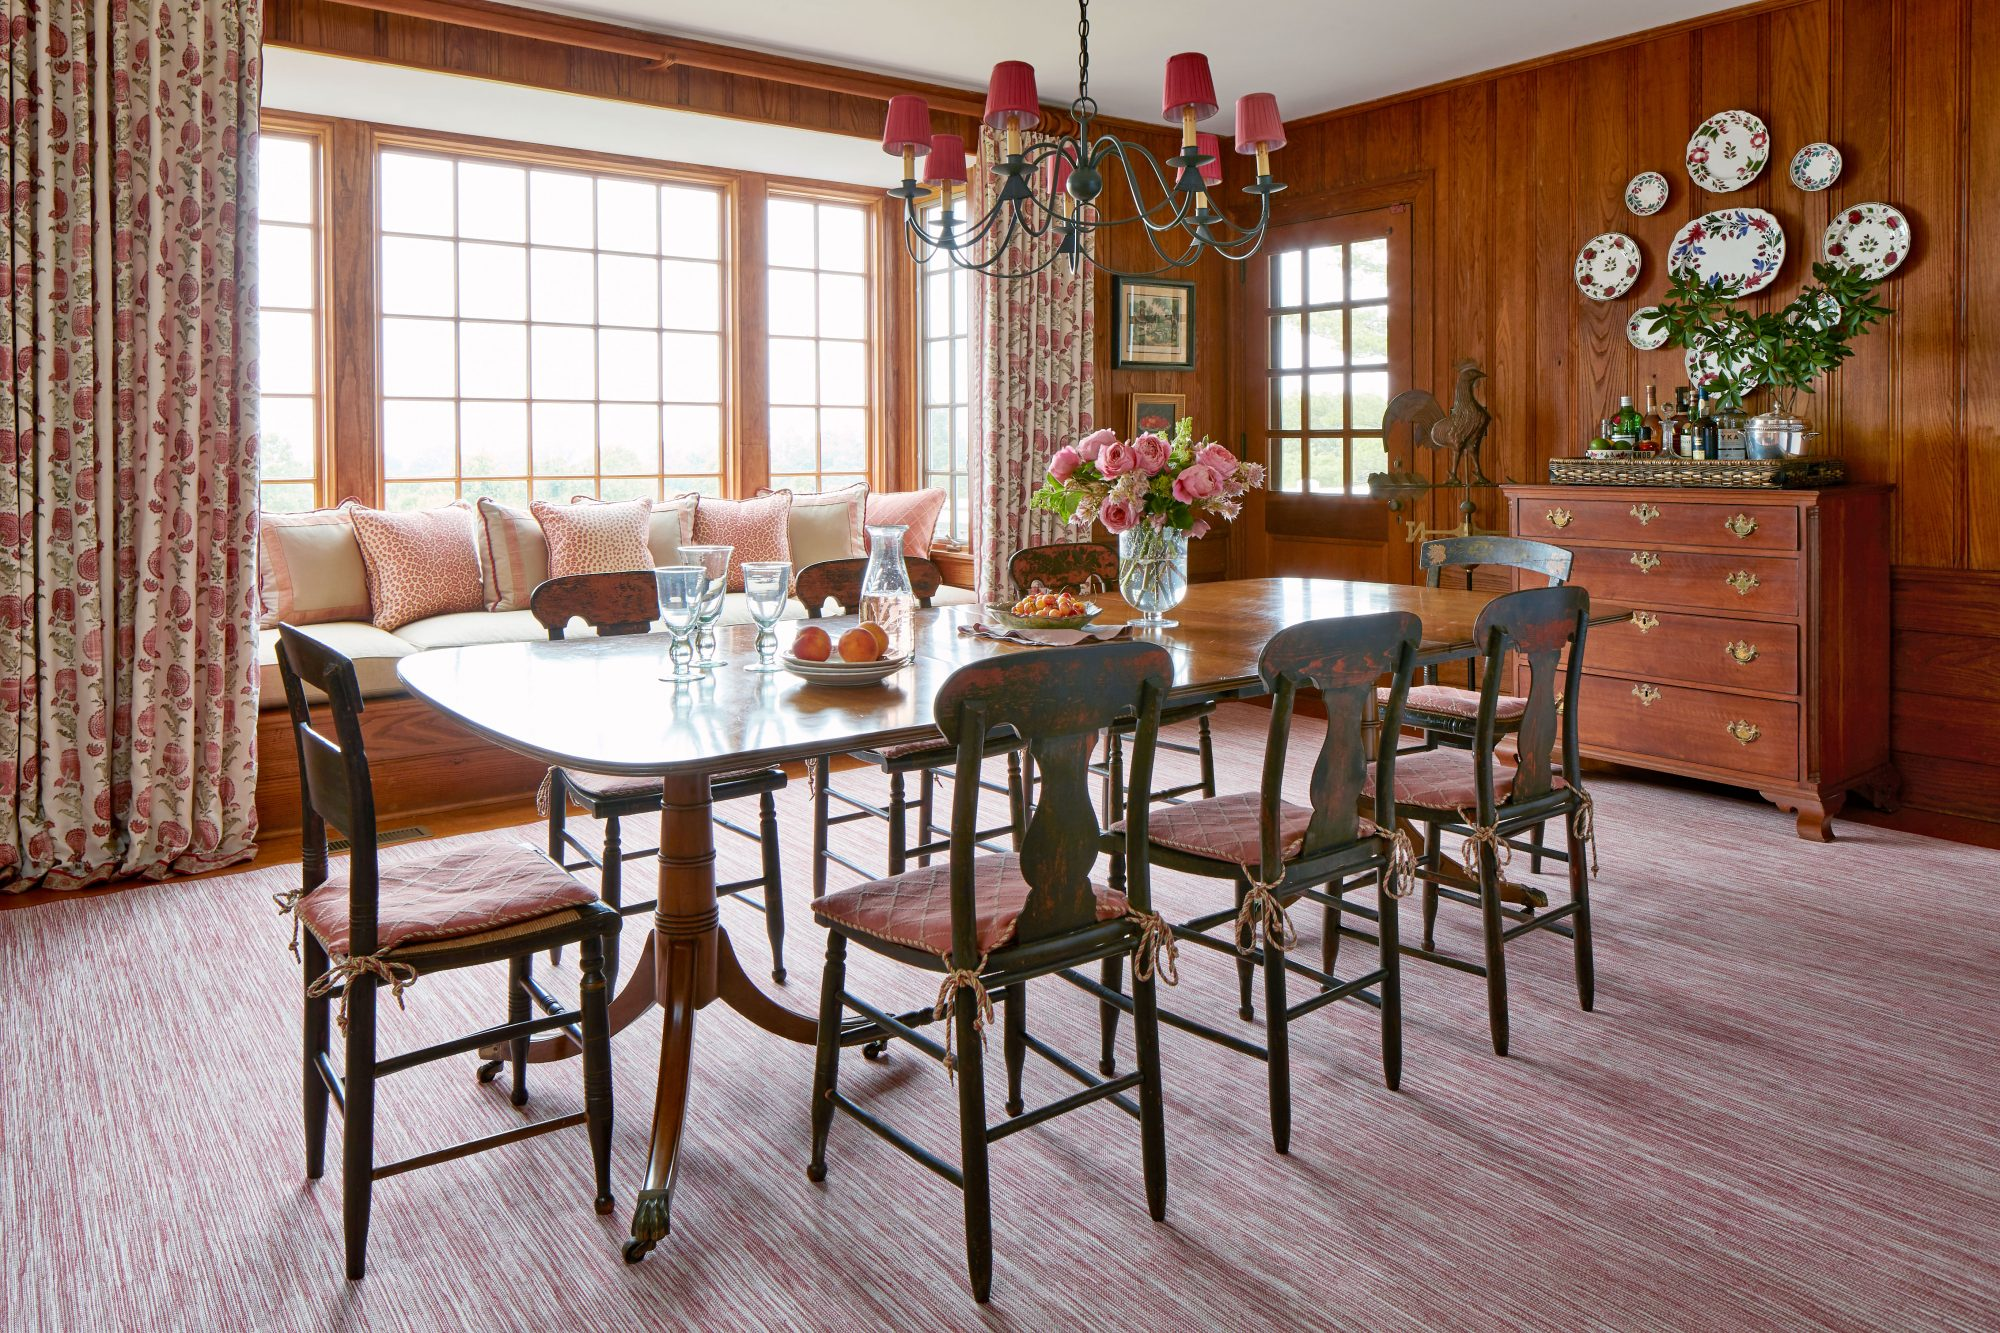 1929 Mountain House Dining Room with Wood Paneled Walls and Large Window Seat